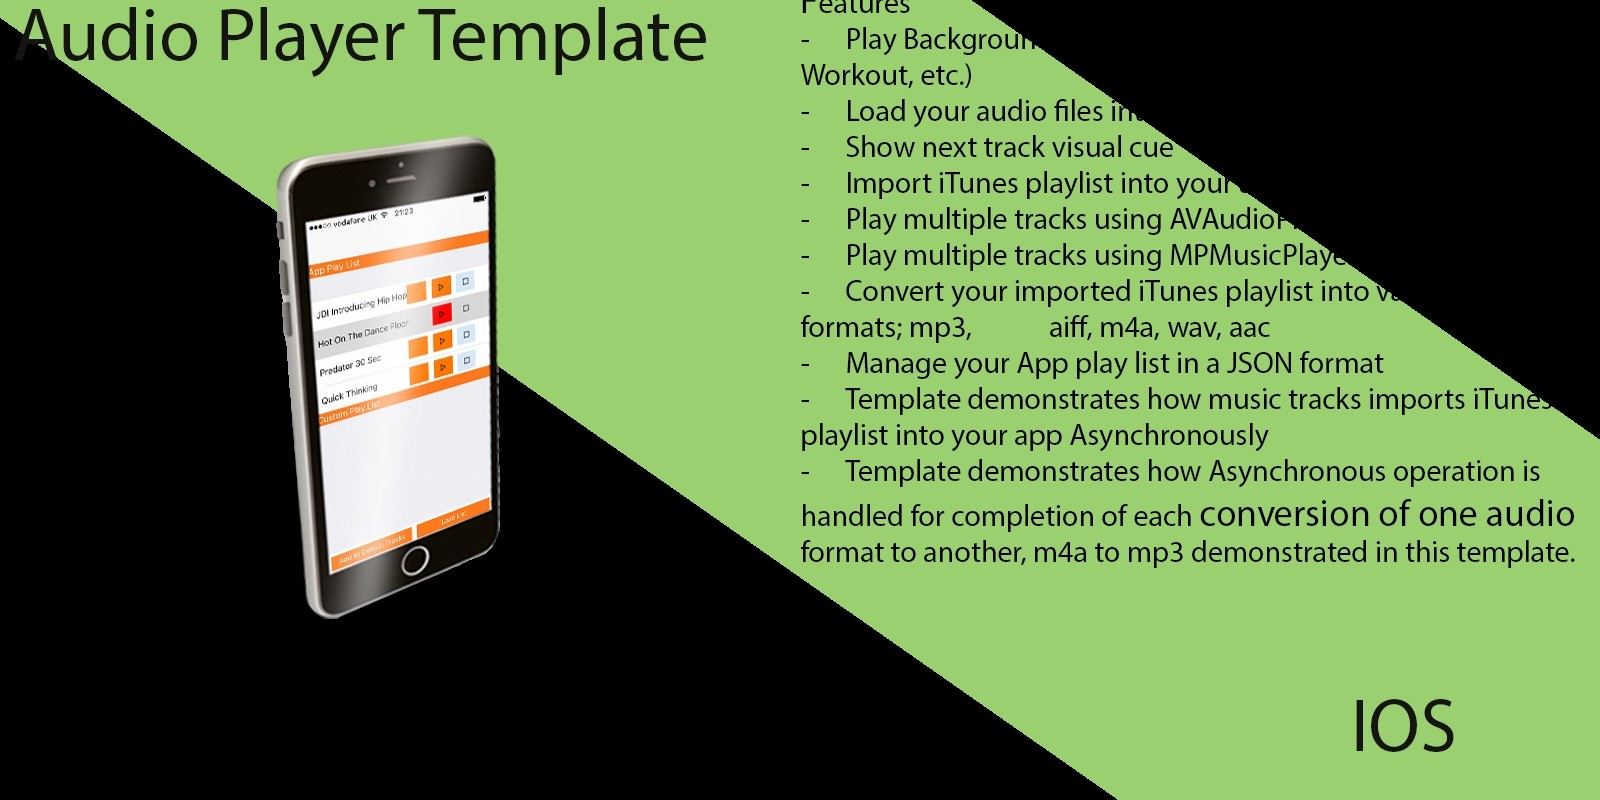 Audio Player Xcode iOS Template - Music App Templates For iOS | Codester